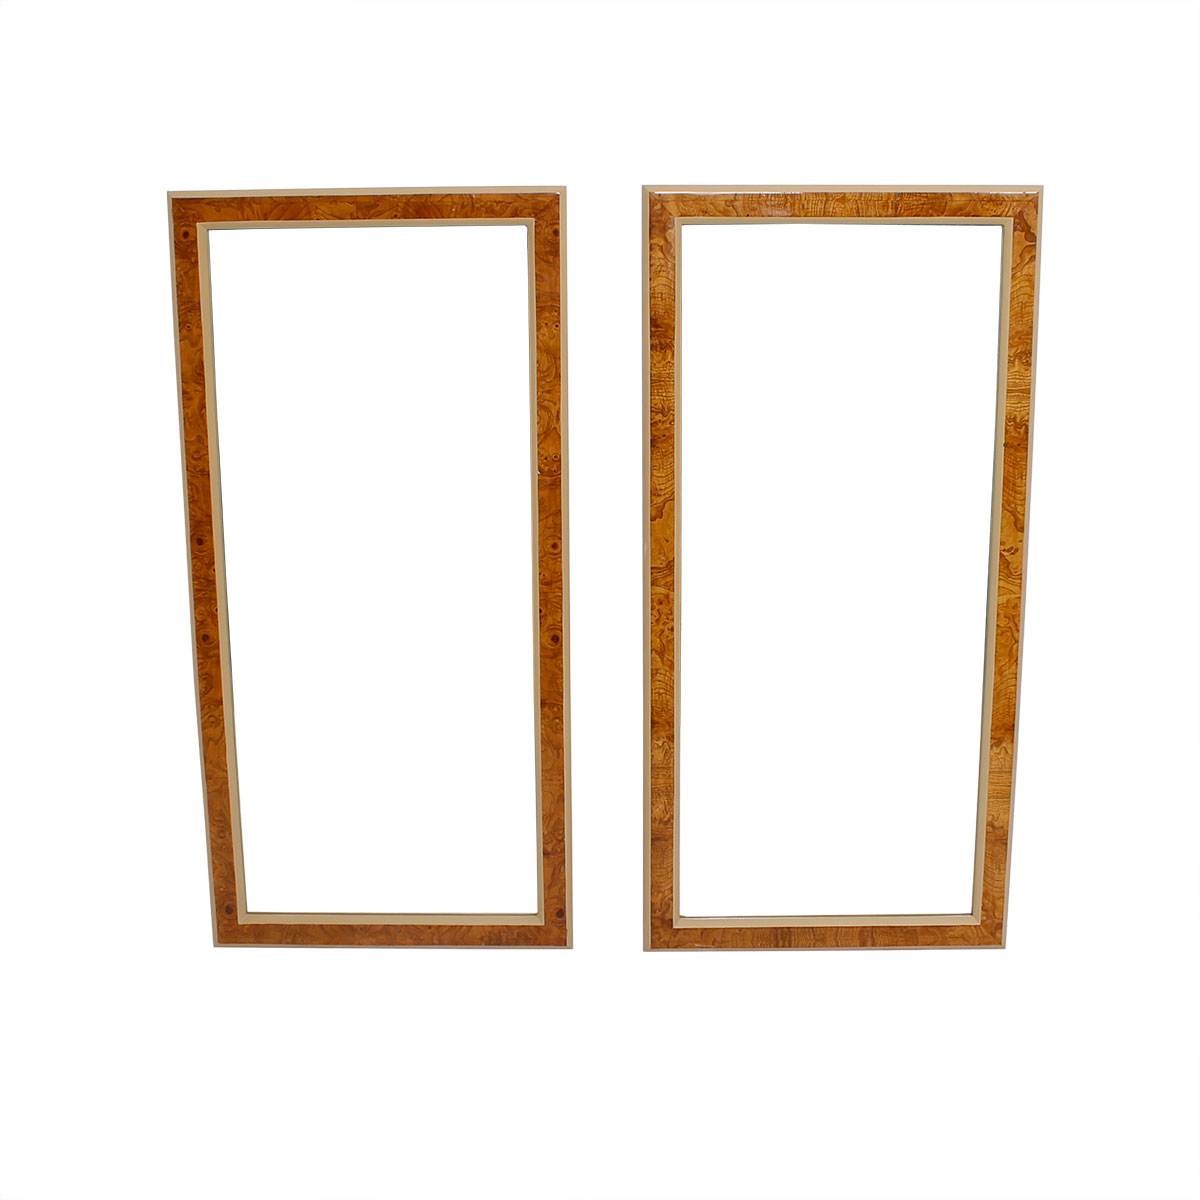 Pair of Milo Baughman Burled Wood Accented Wall Mirrors